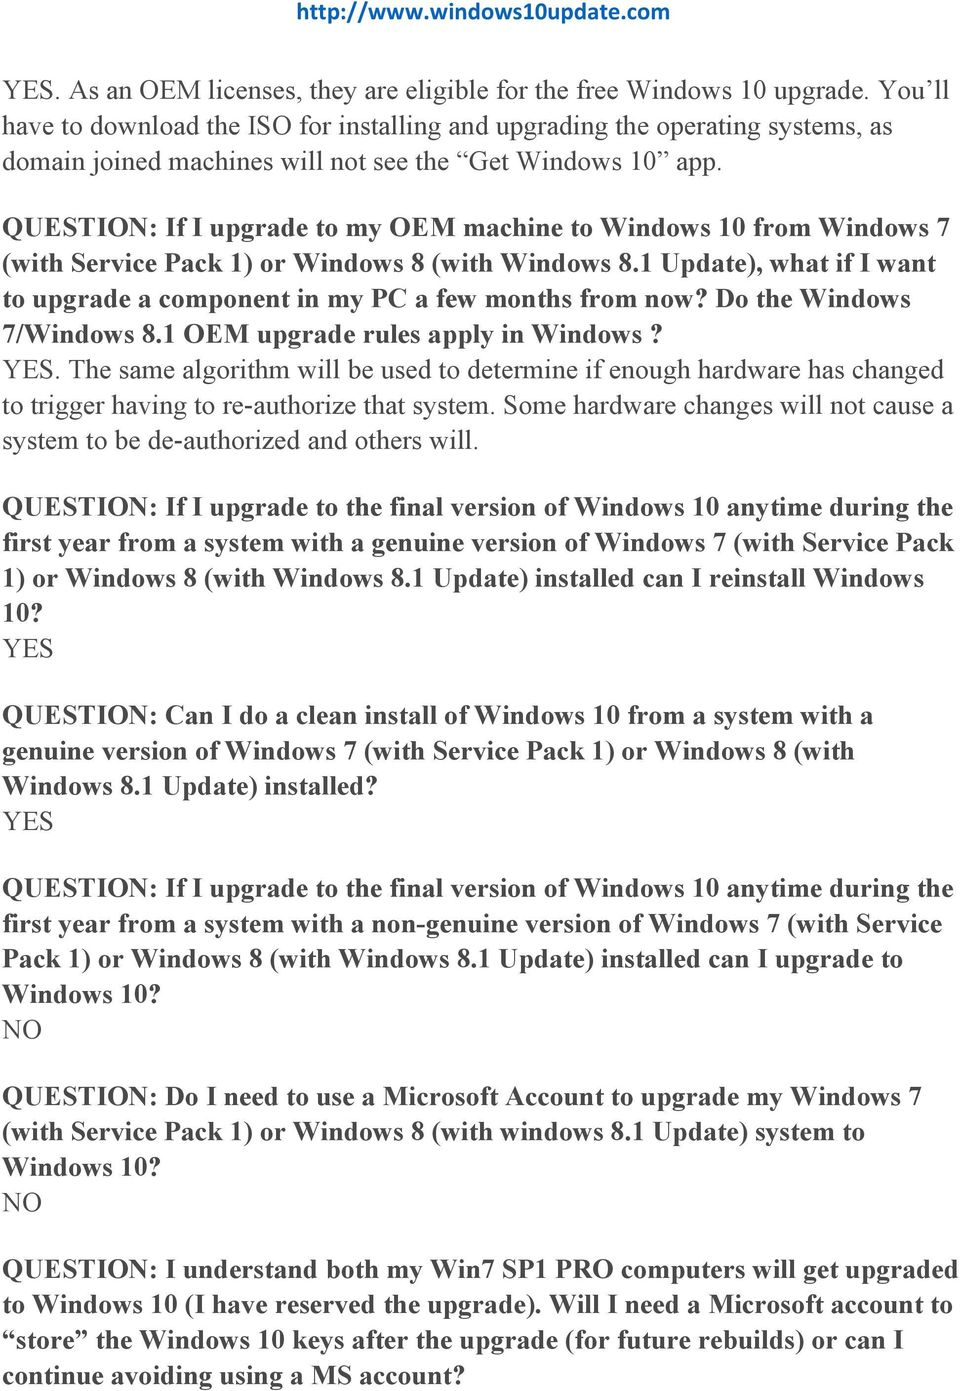 The Ultimate Windows 10 FAQ Page Compiled by - PDF